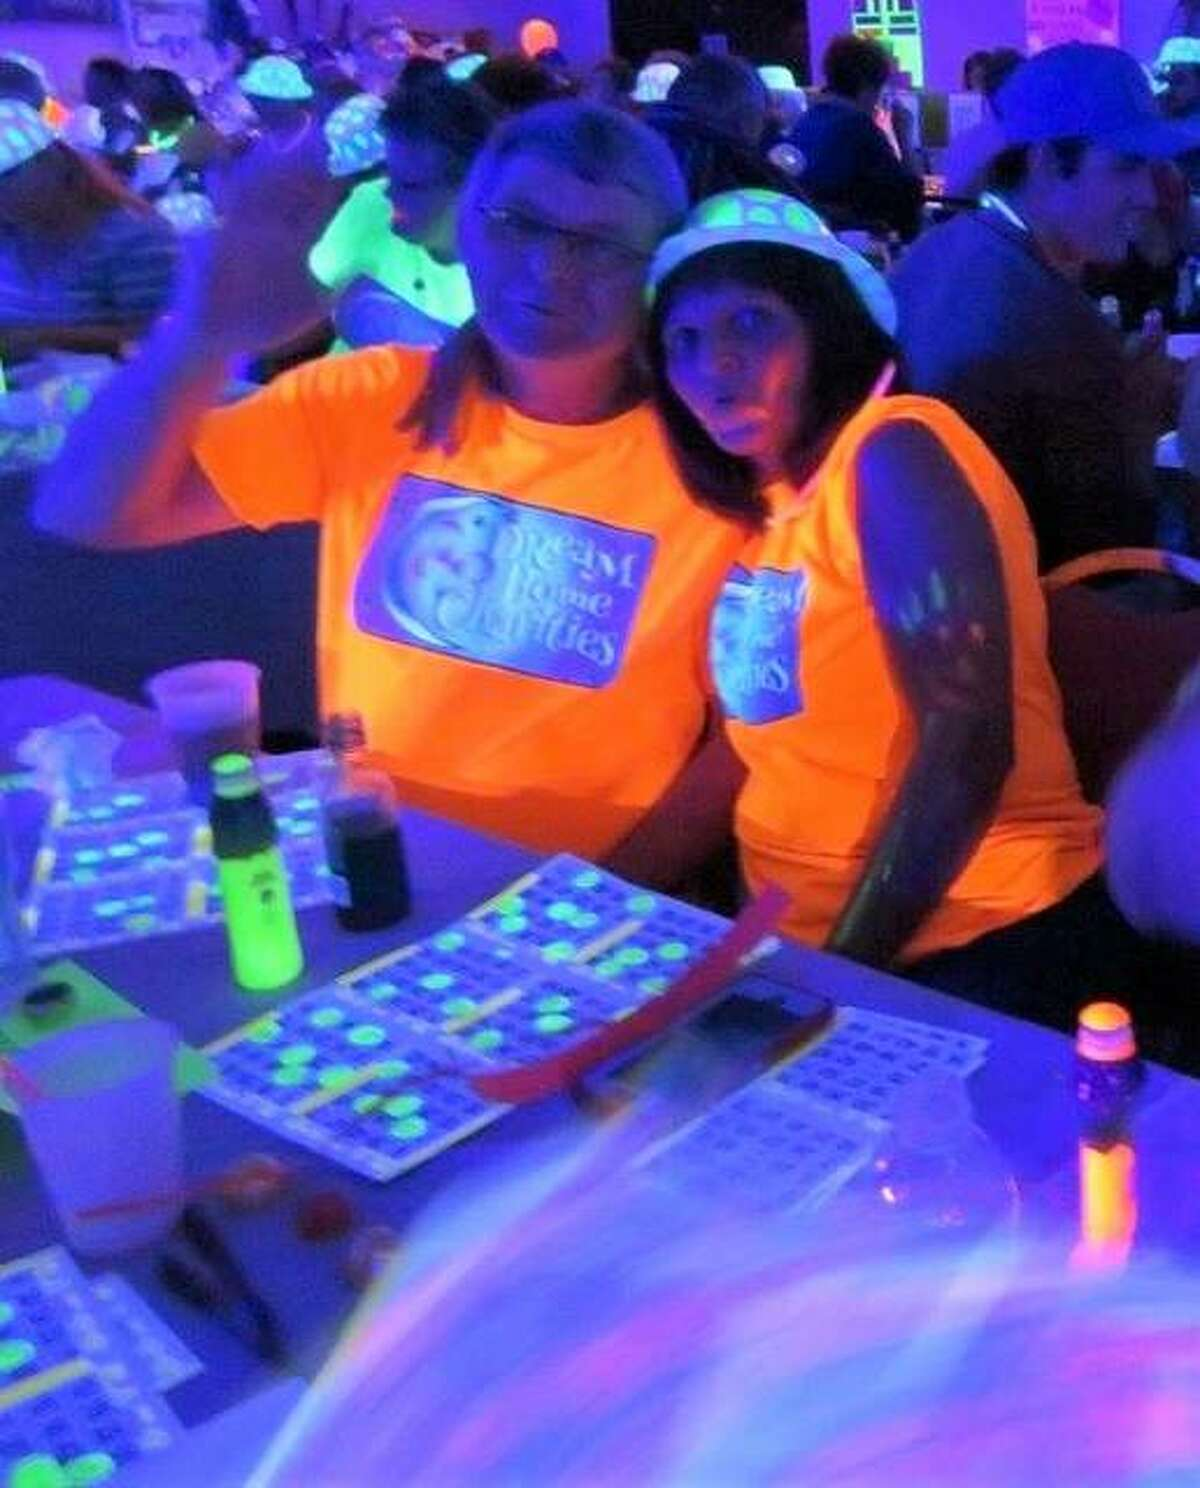 Also Saturday, get your glow sticks ready for Glo Bingo to support Dream Home Charities at 7 p.m. at the Alton VFW Post 1308, 4445 N. Alby St., in Alton. Dream Home Charities helps multiple local charity organizations help the less fortunate. It's 100% volunteer and 100% of all donations given to them are given back to the local community where it's needed most. Tickets cost $30 per person in advance or $35 at the door. Price includes six bingo cards, a glow dabber, glow hat and dinner. Additional bingo cards cost $5. For advance reservations contact Sherry Gilleland at 618-779-0990 or Dream Home Realty Centre Inc. at 618-497-4663.